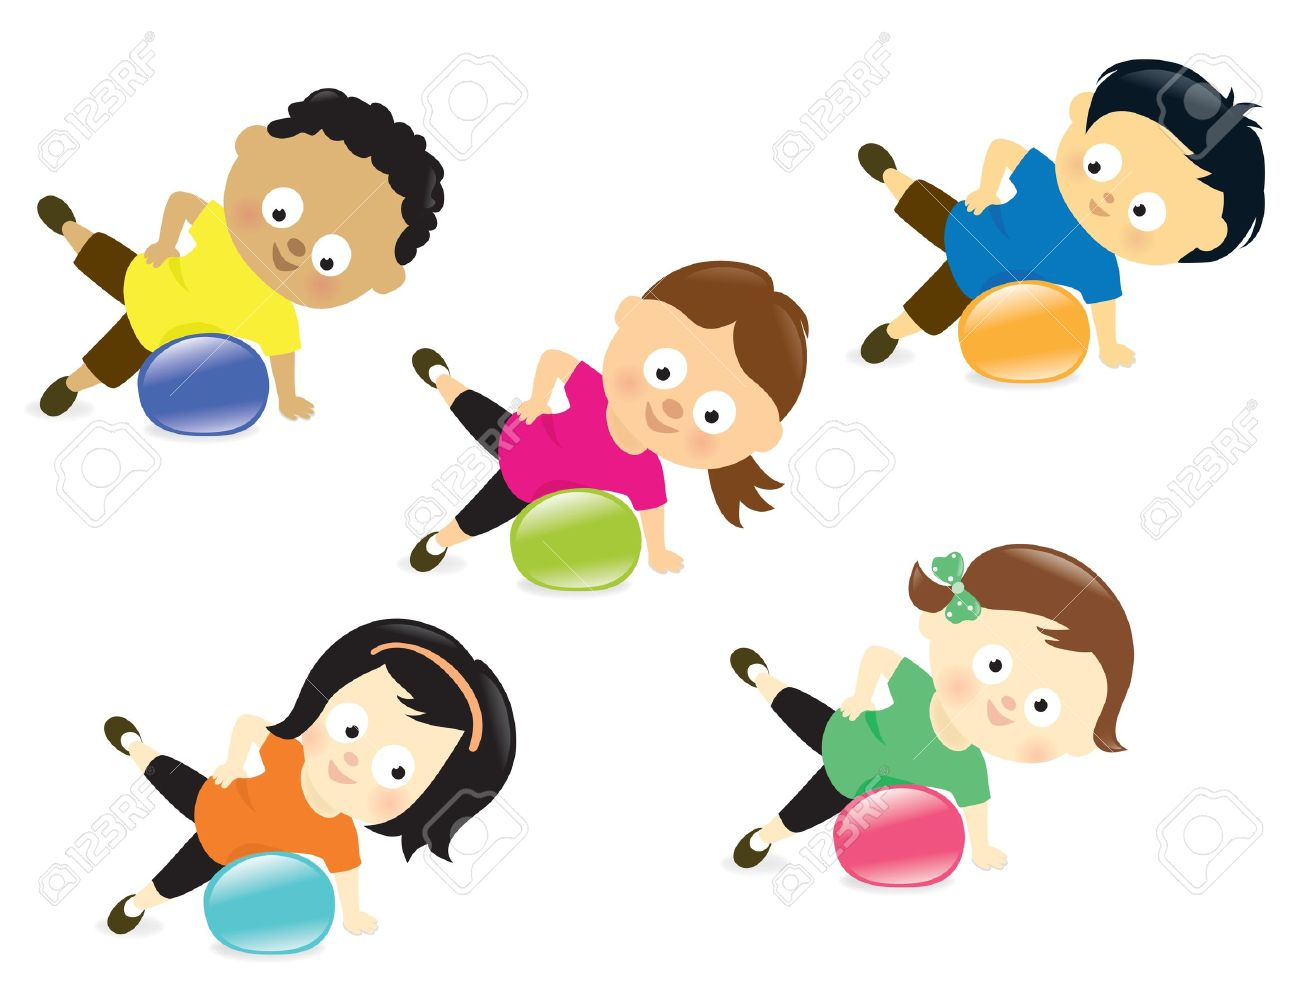 Fit kids clipart svg transparent download 1,042 Good Fit Stock Vector Illustration And Royalty Free Good Fit ... svg transparent download